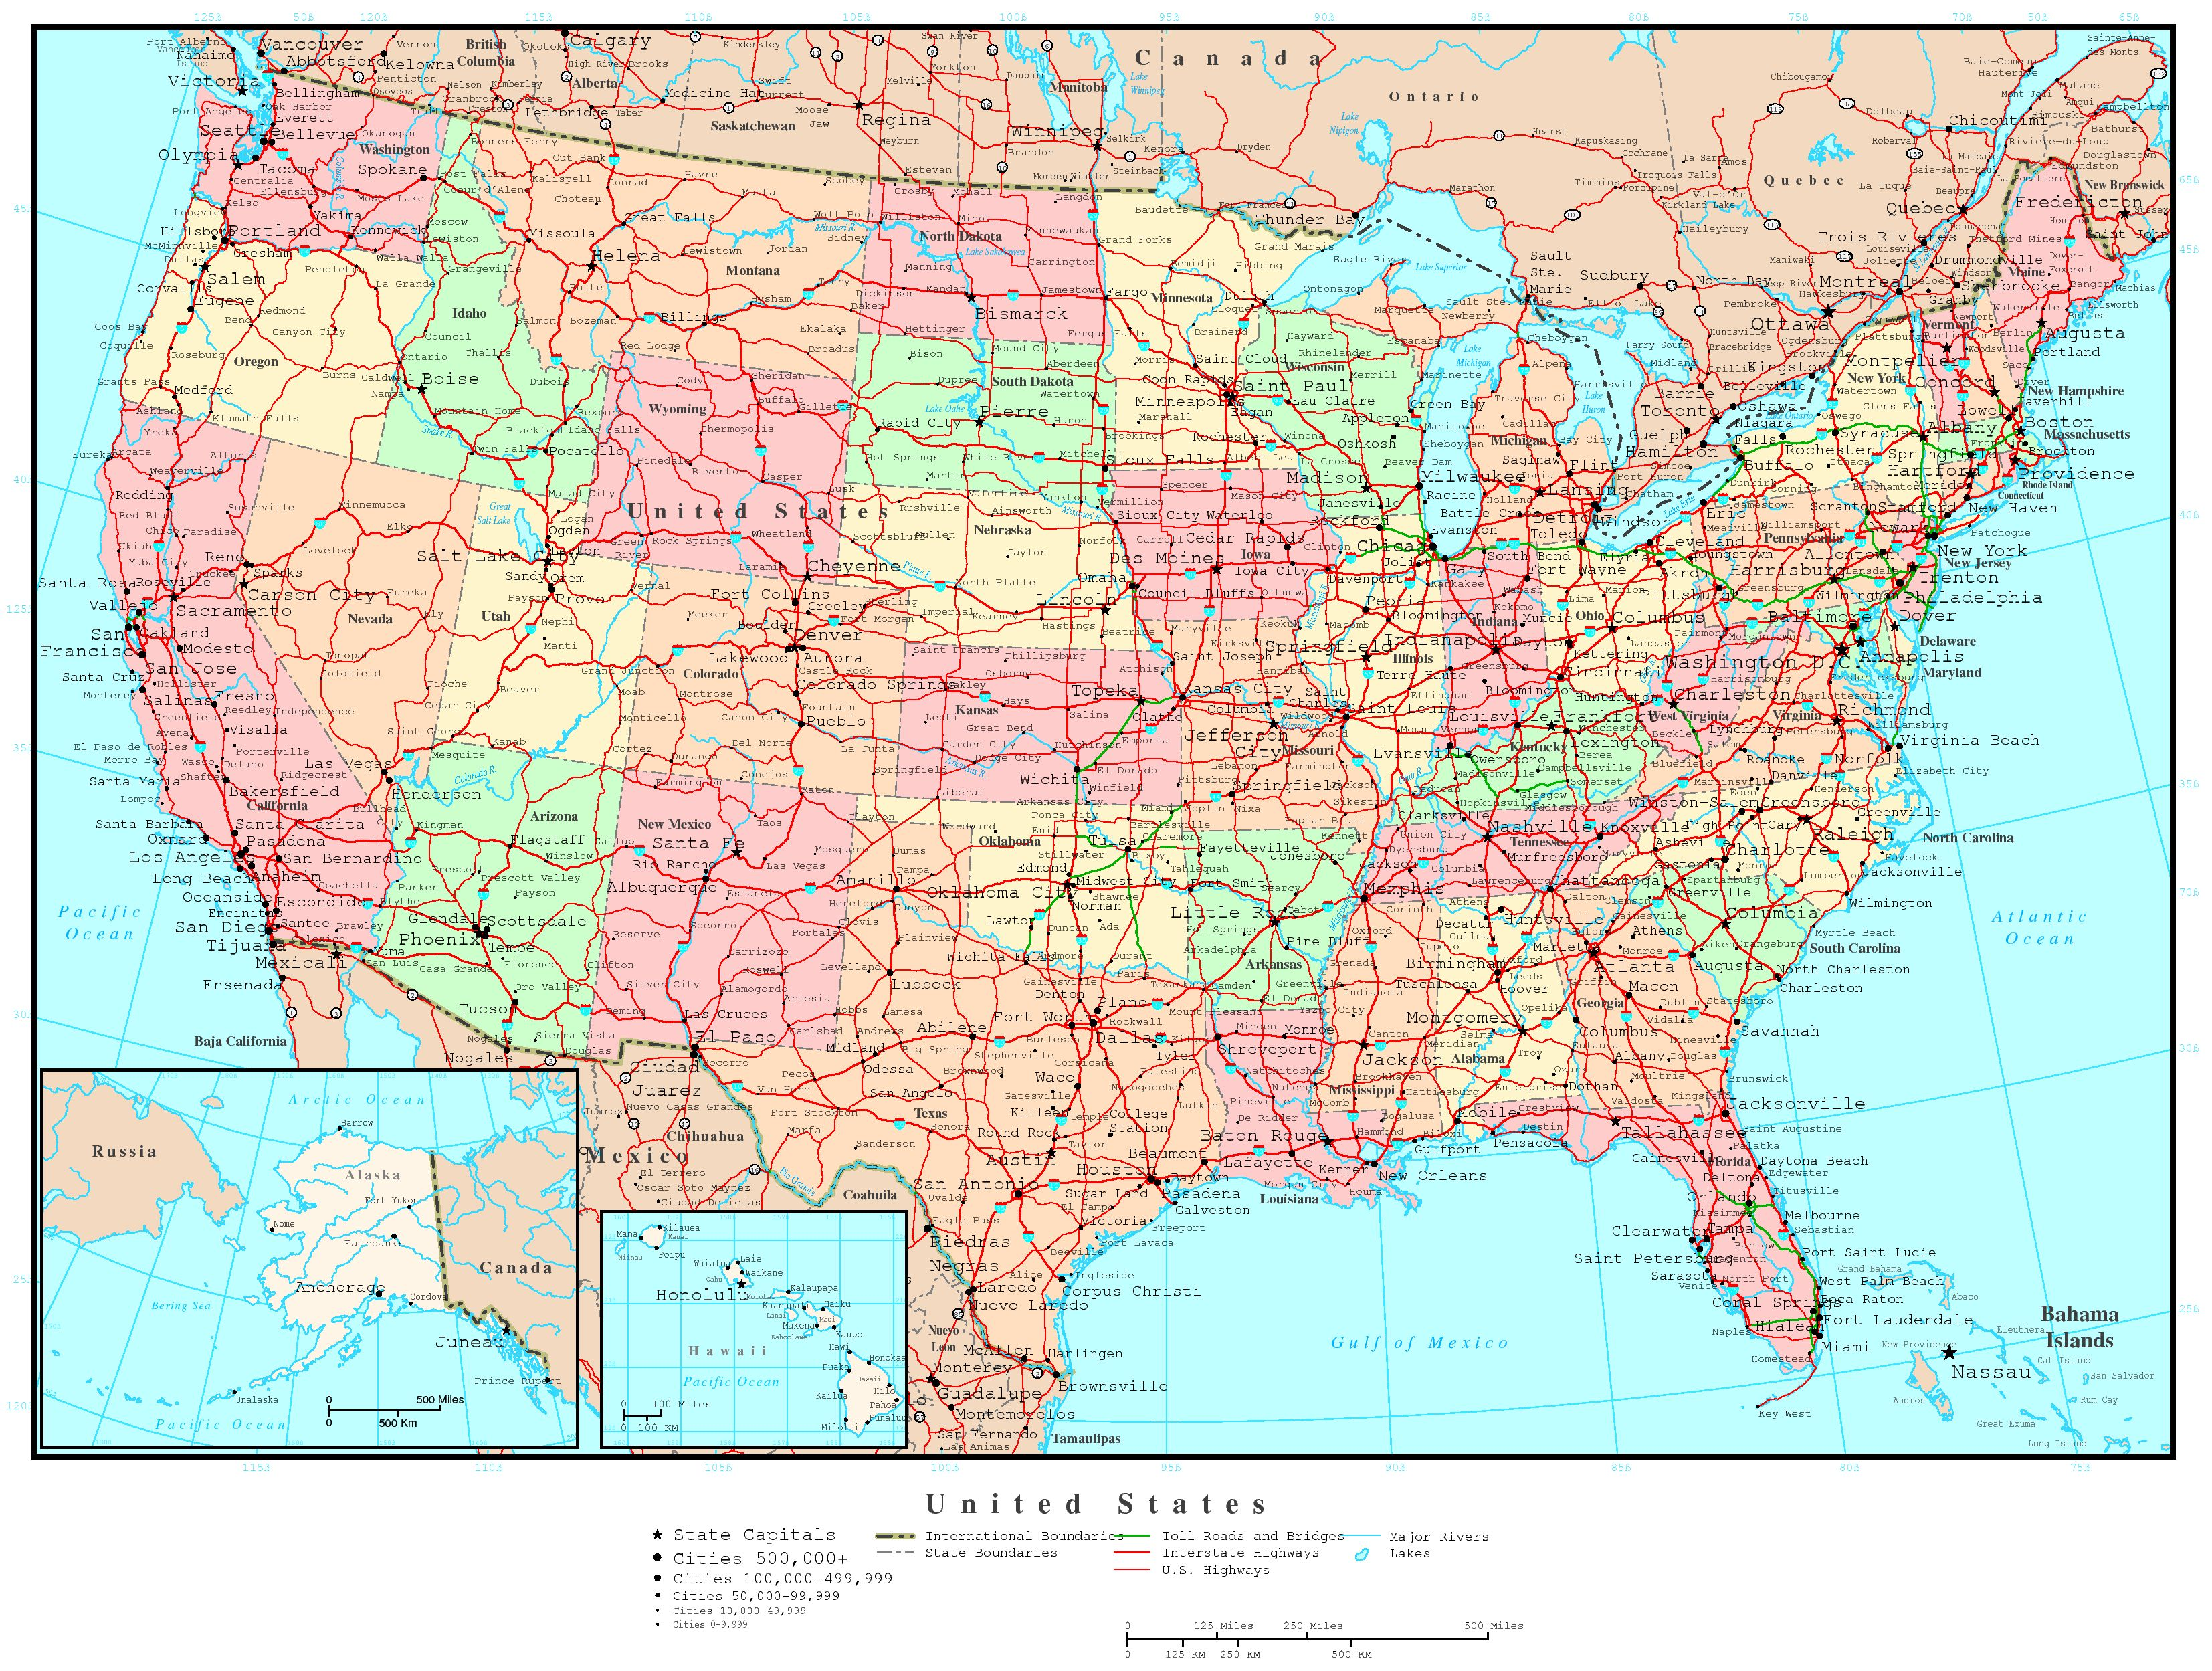 United States Political Map - Usa maps of states